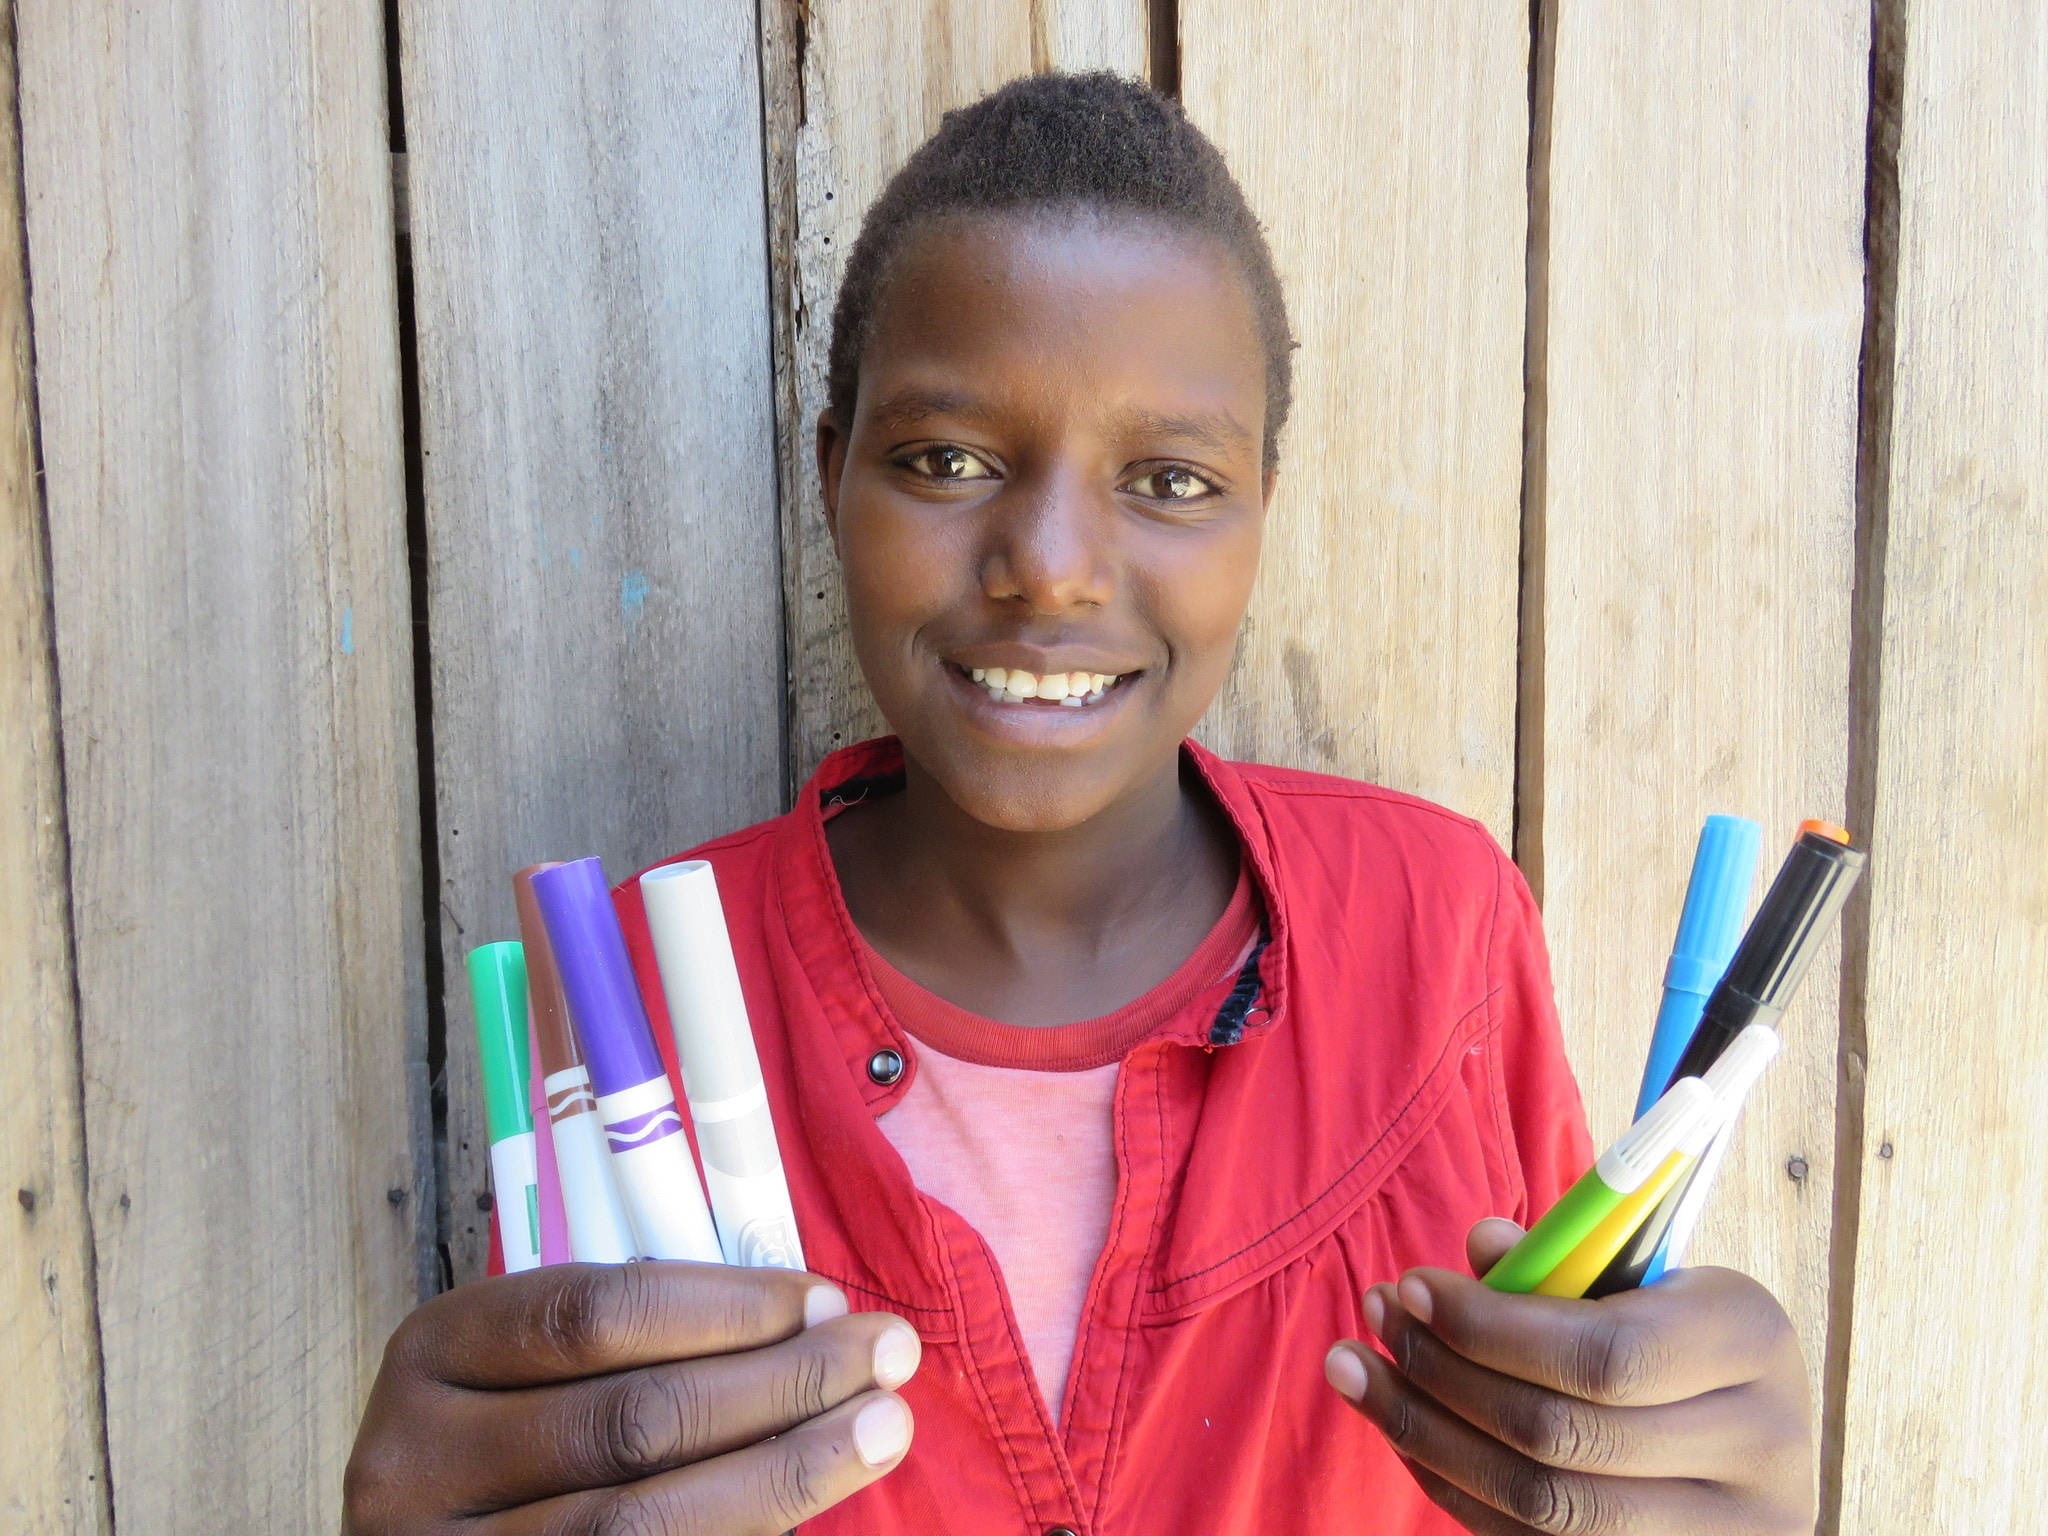 Taiyana holding a new set of markers for school.